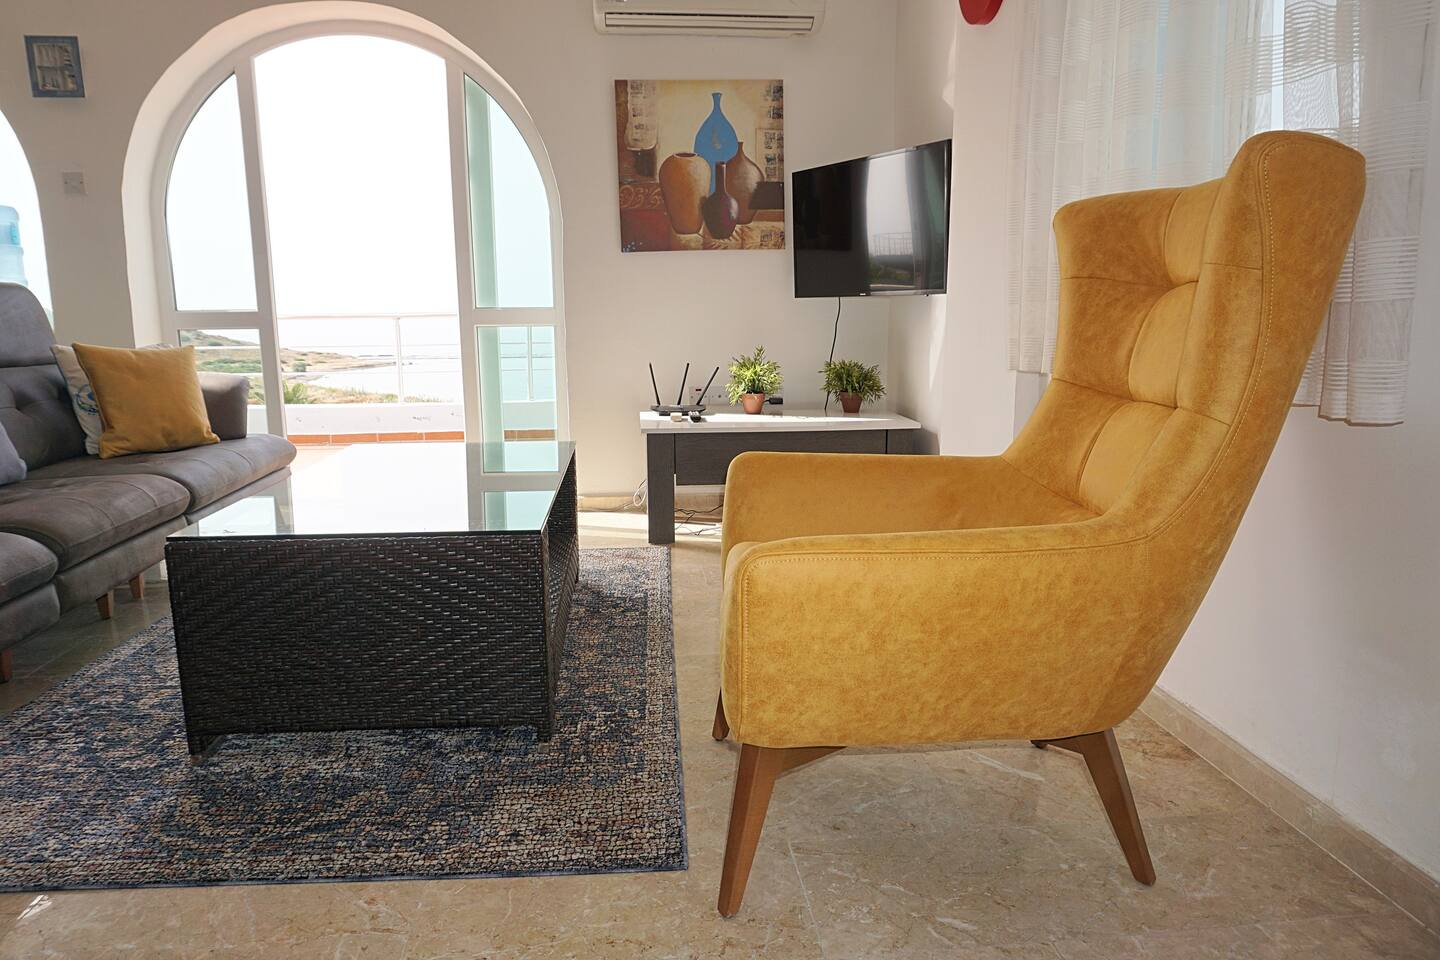 Joya Cyprus Memories Penthouse Apartment photo 26035806